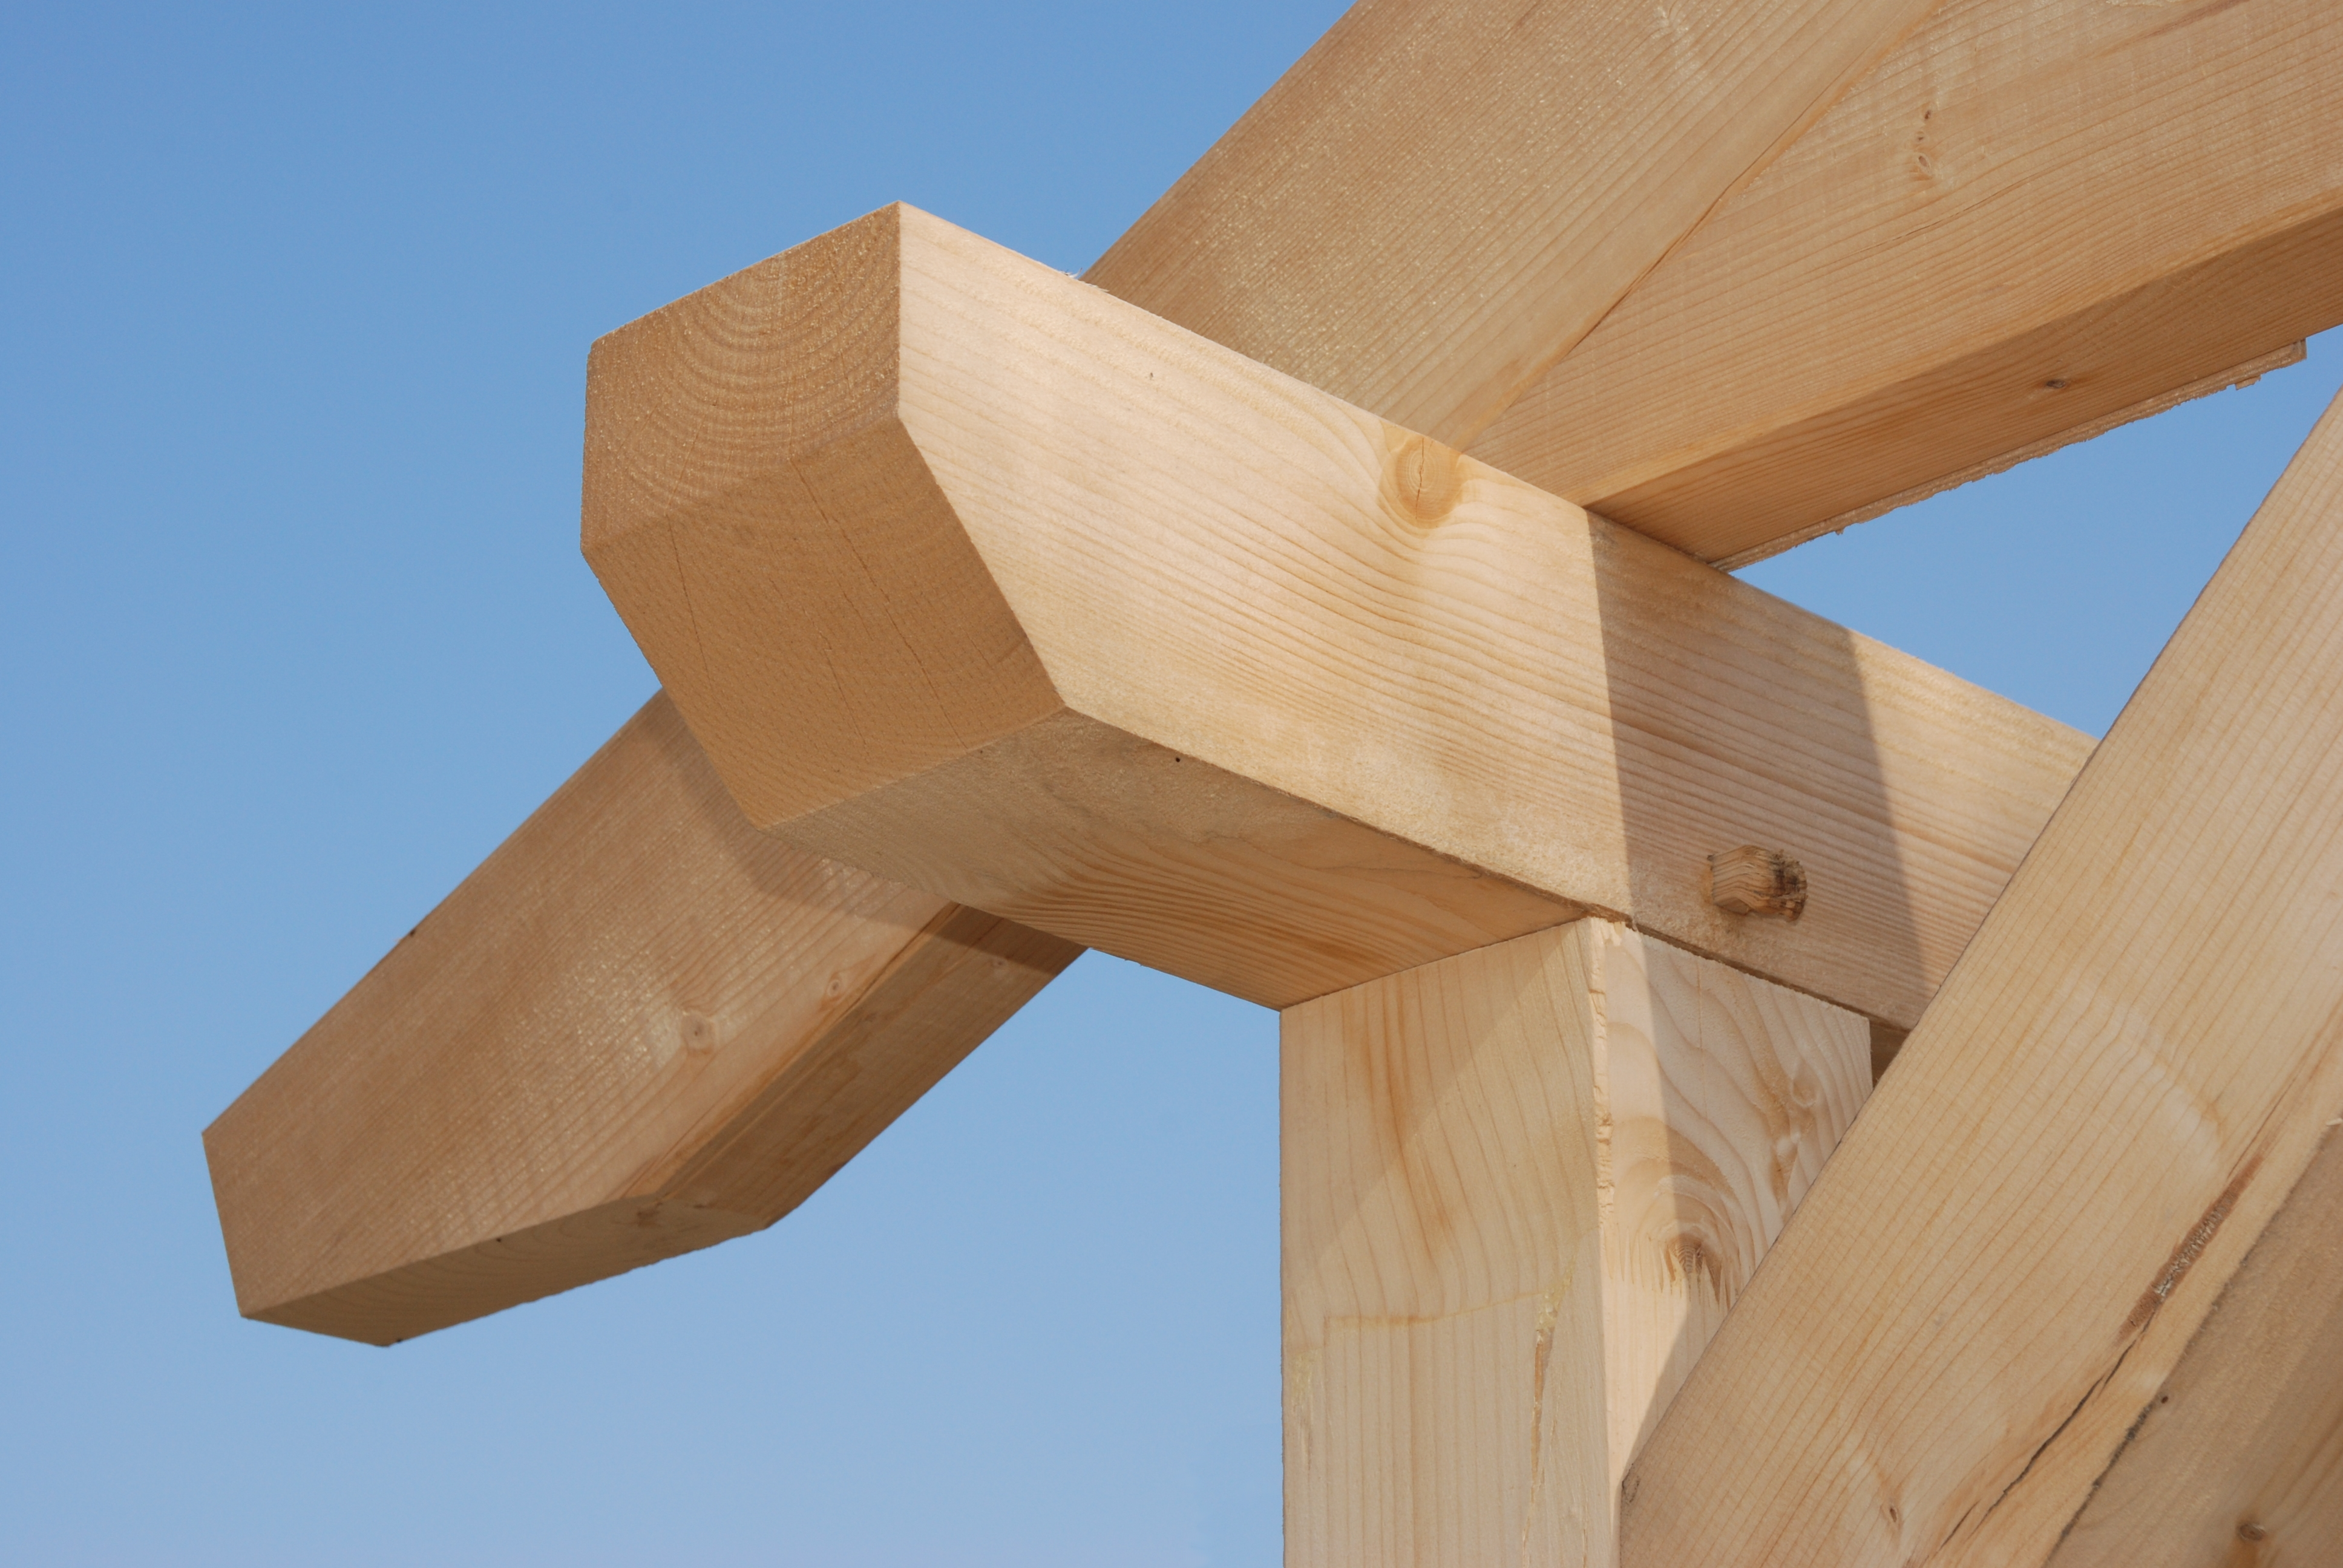 Close up of a timber frame construction for a house.